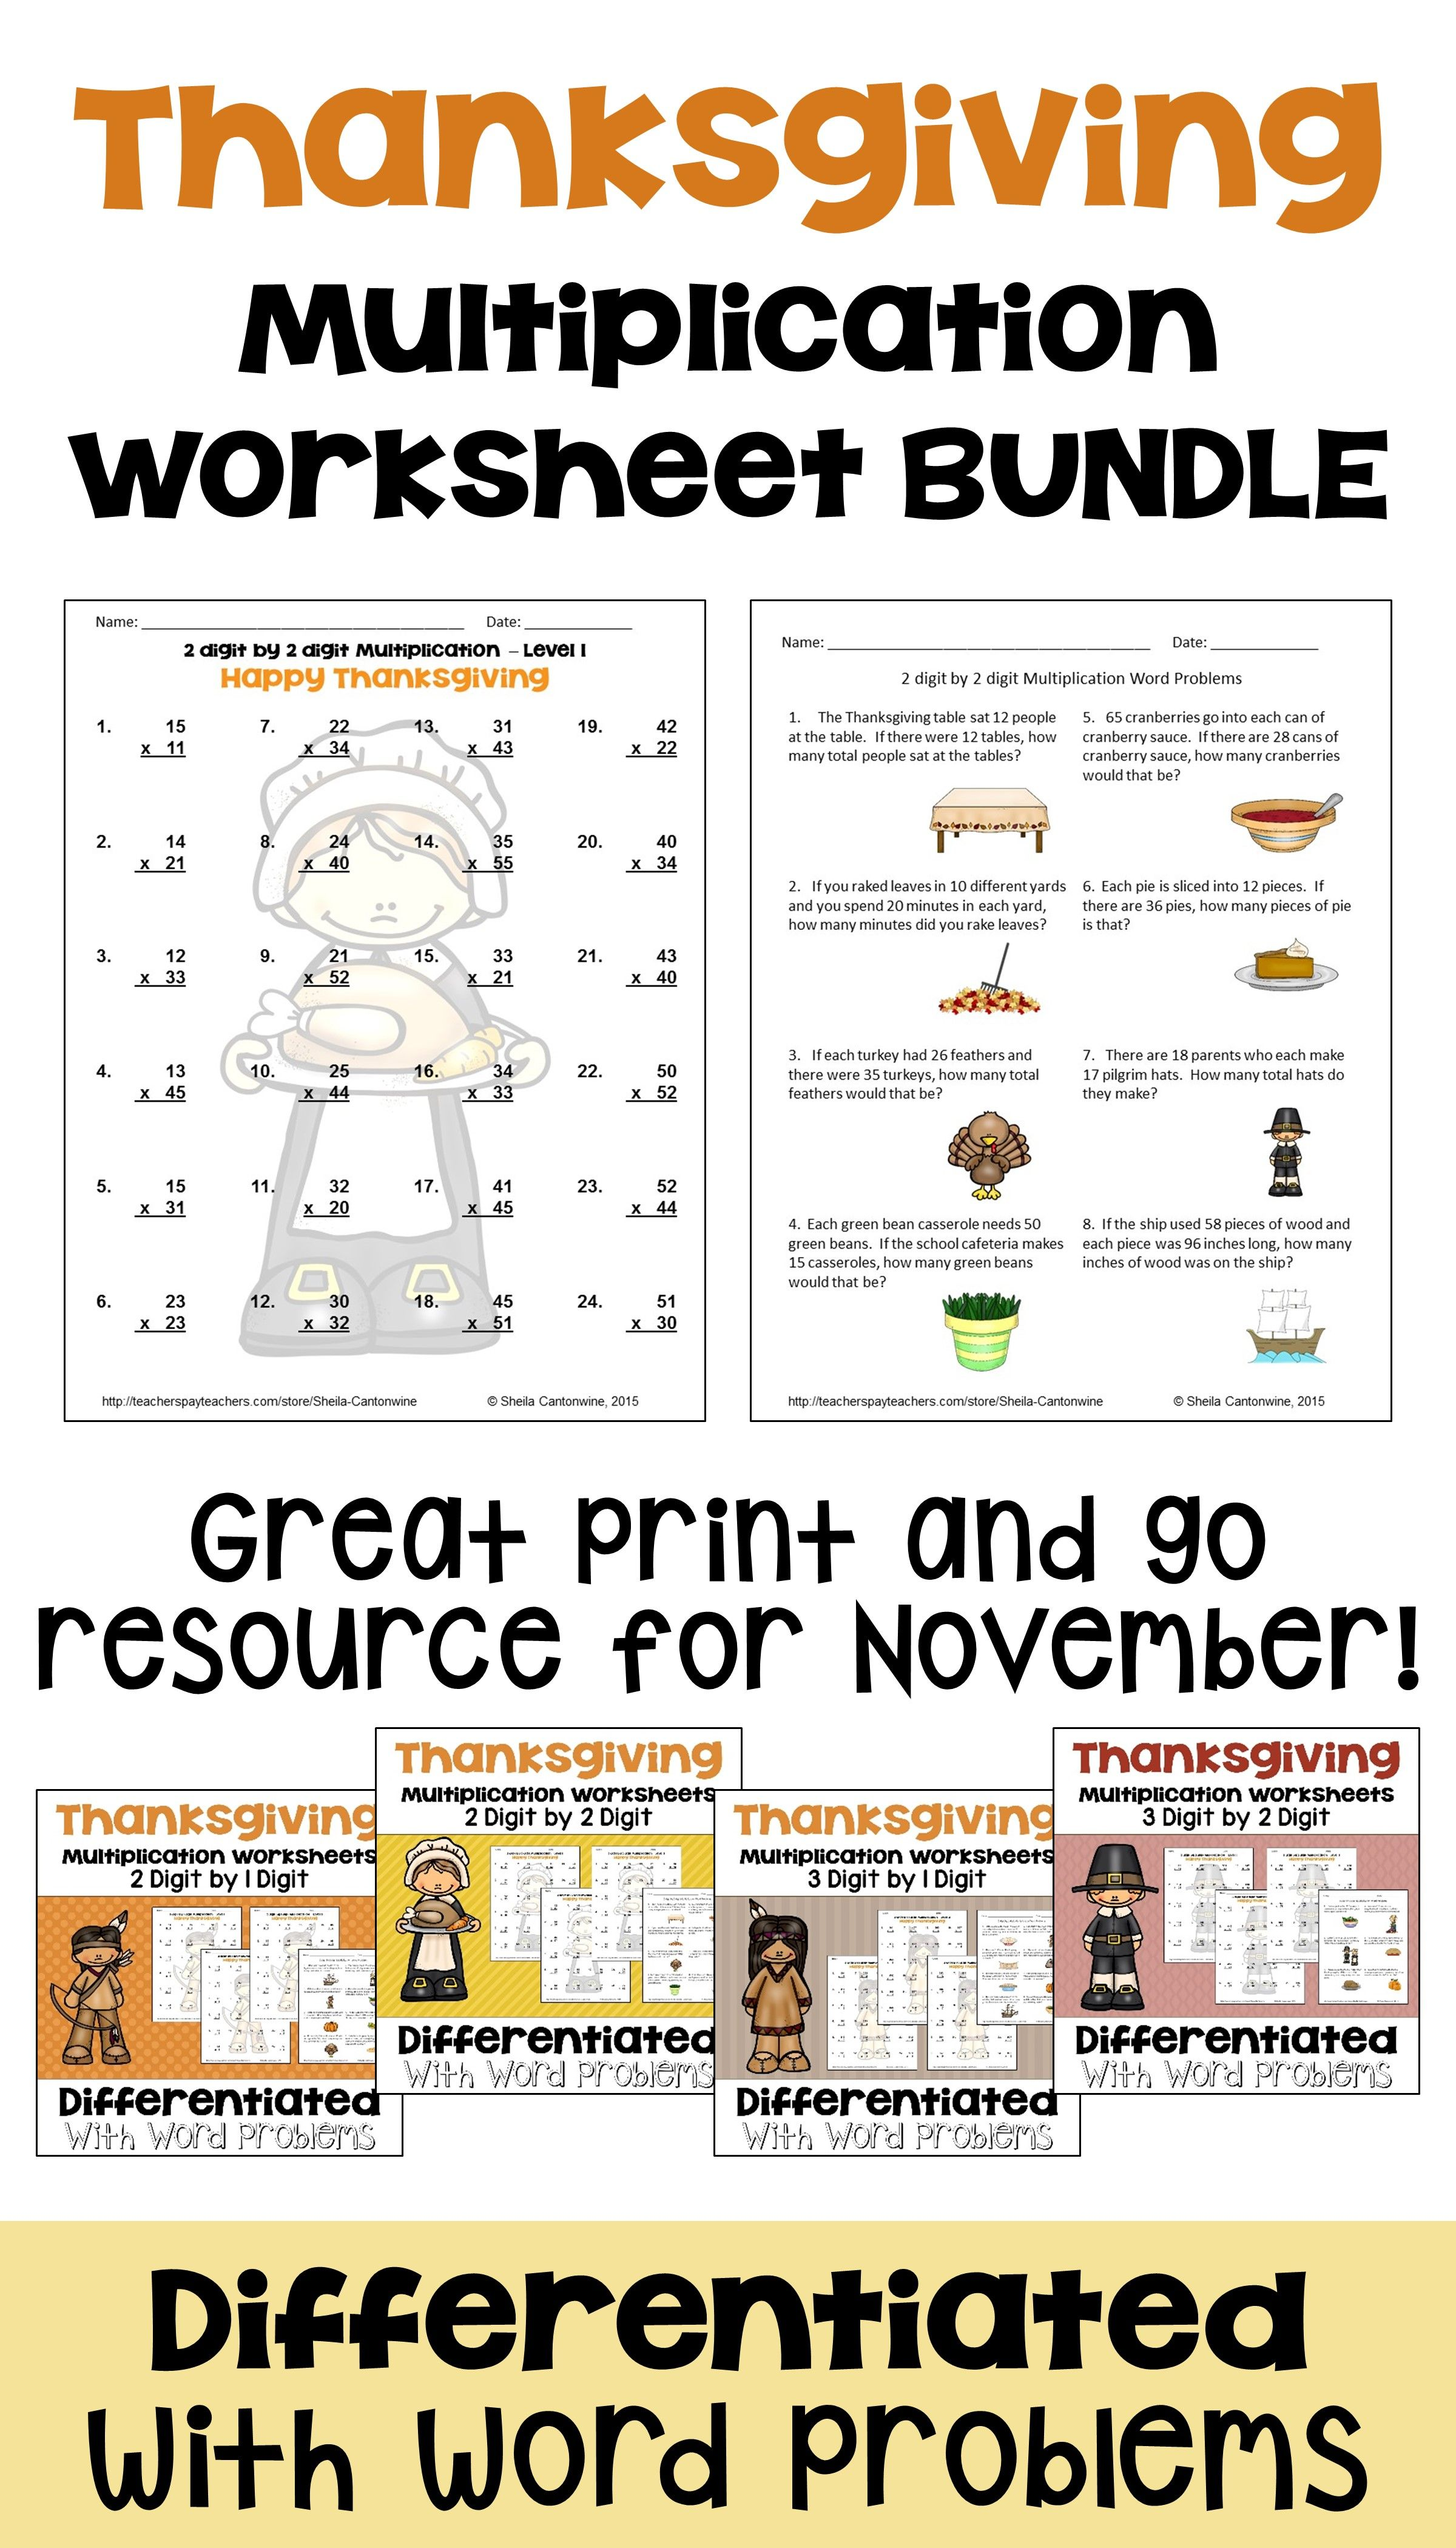 small resolution of Thanksgiving Multiplication Worksheet Bundle with Word Problems   Thanksgiving  math